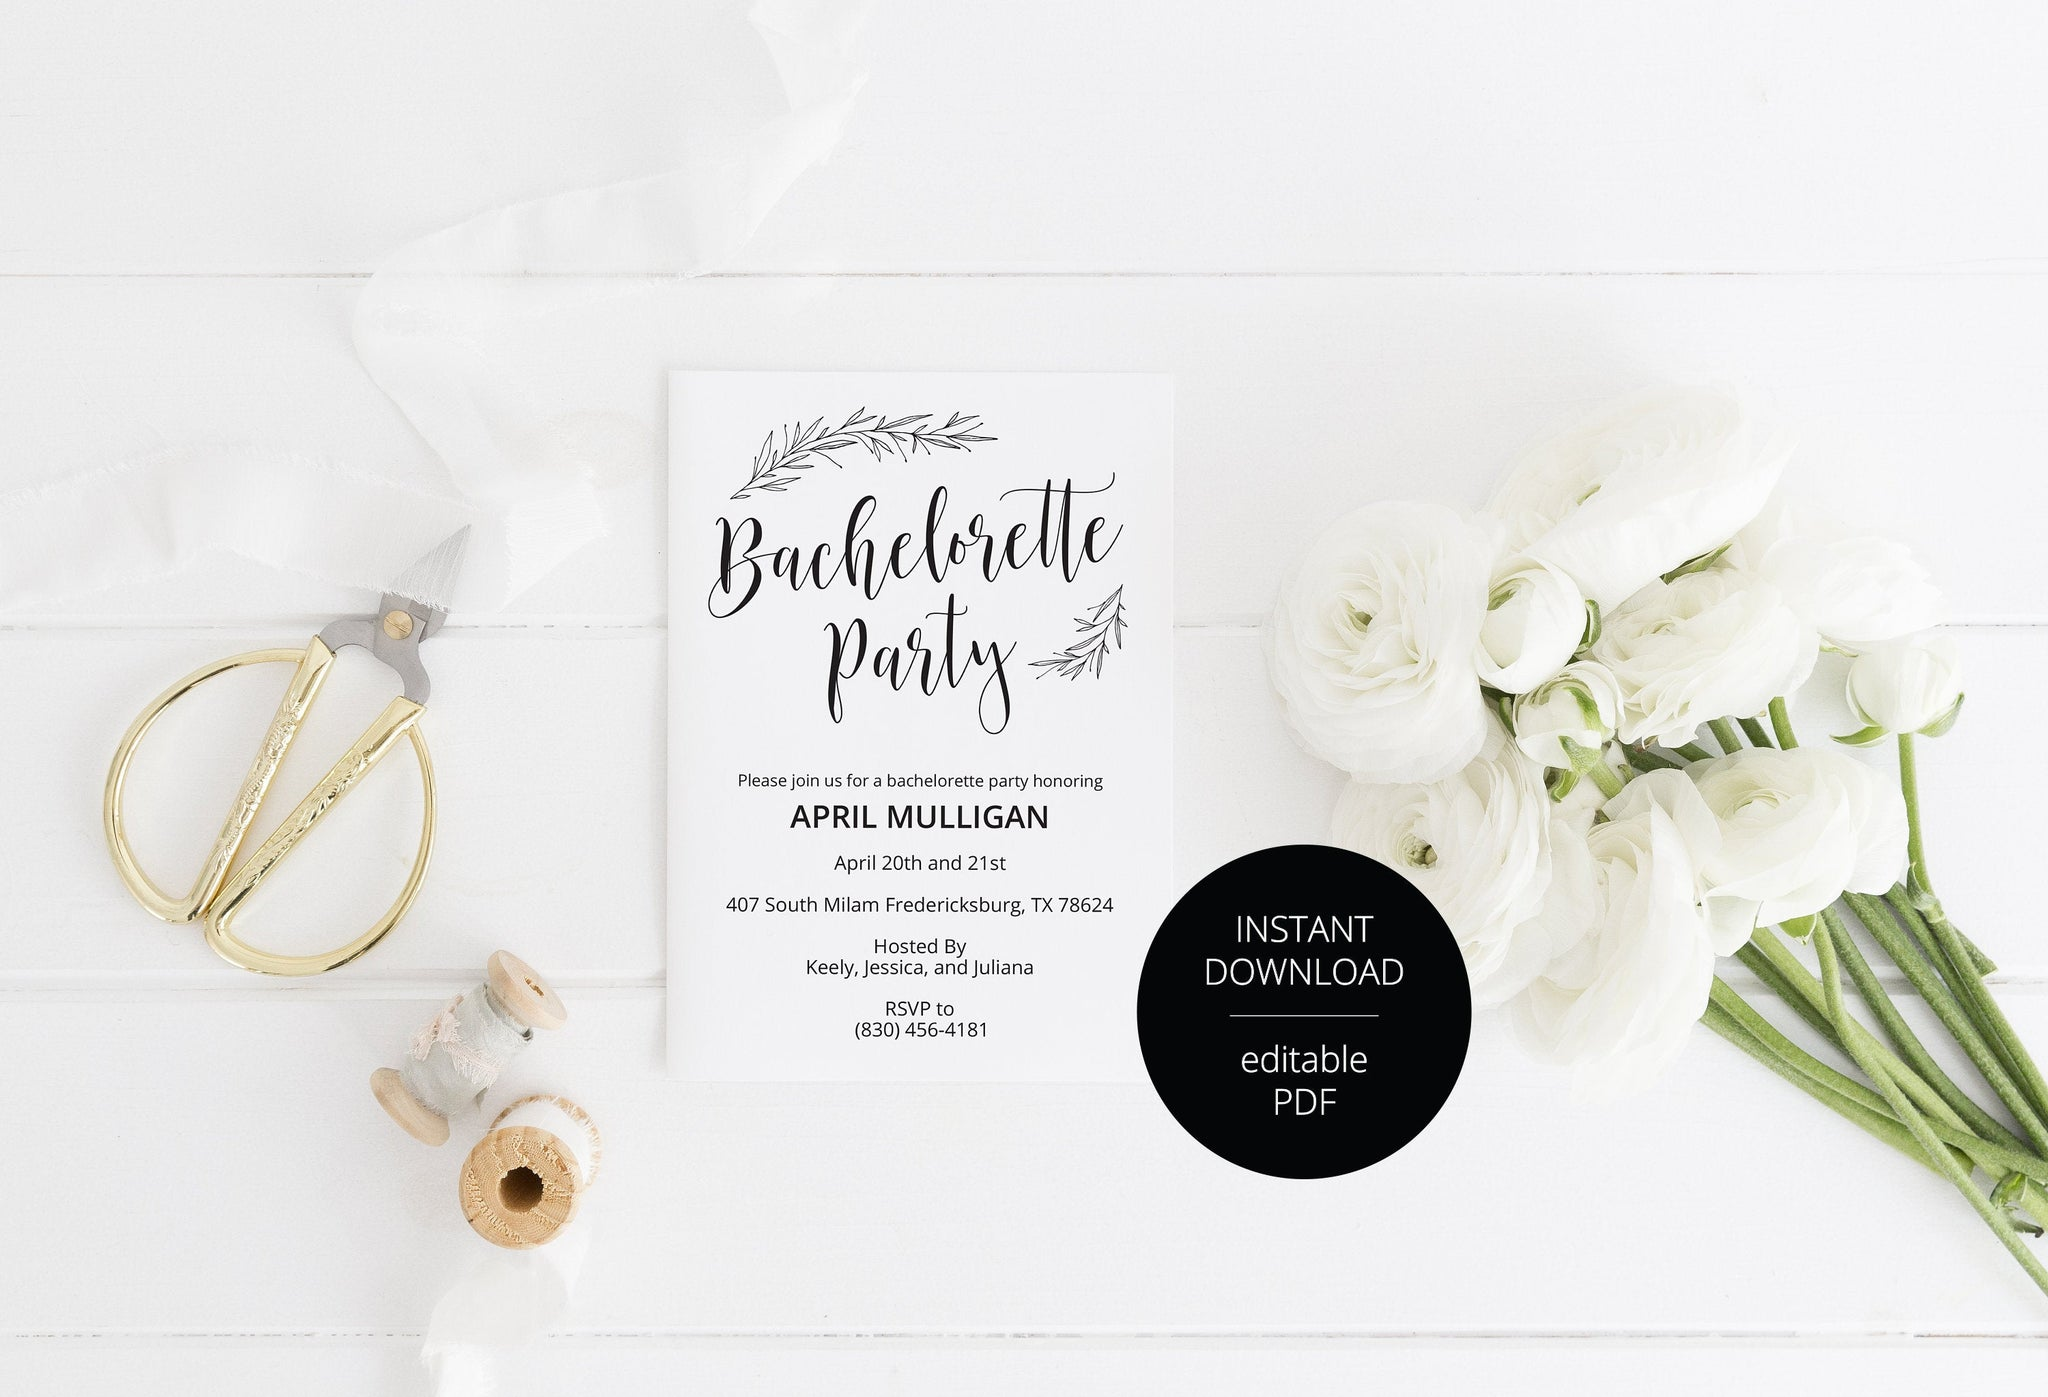 Rustic Bachelorette Party Invite, DIY Editable Instant Download Bachelorette Invites, Minimal Invitation Template - APRIL